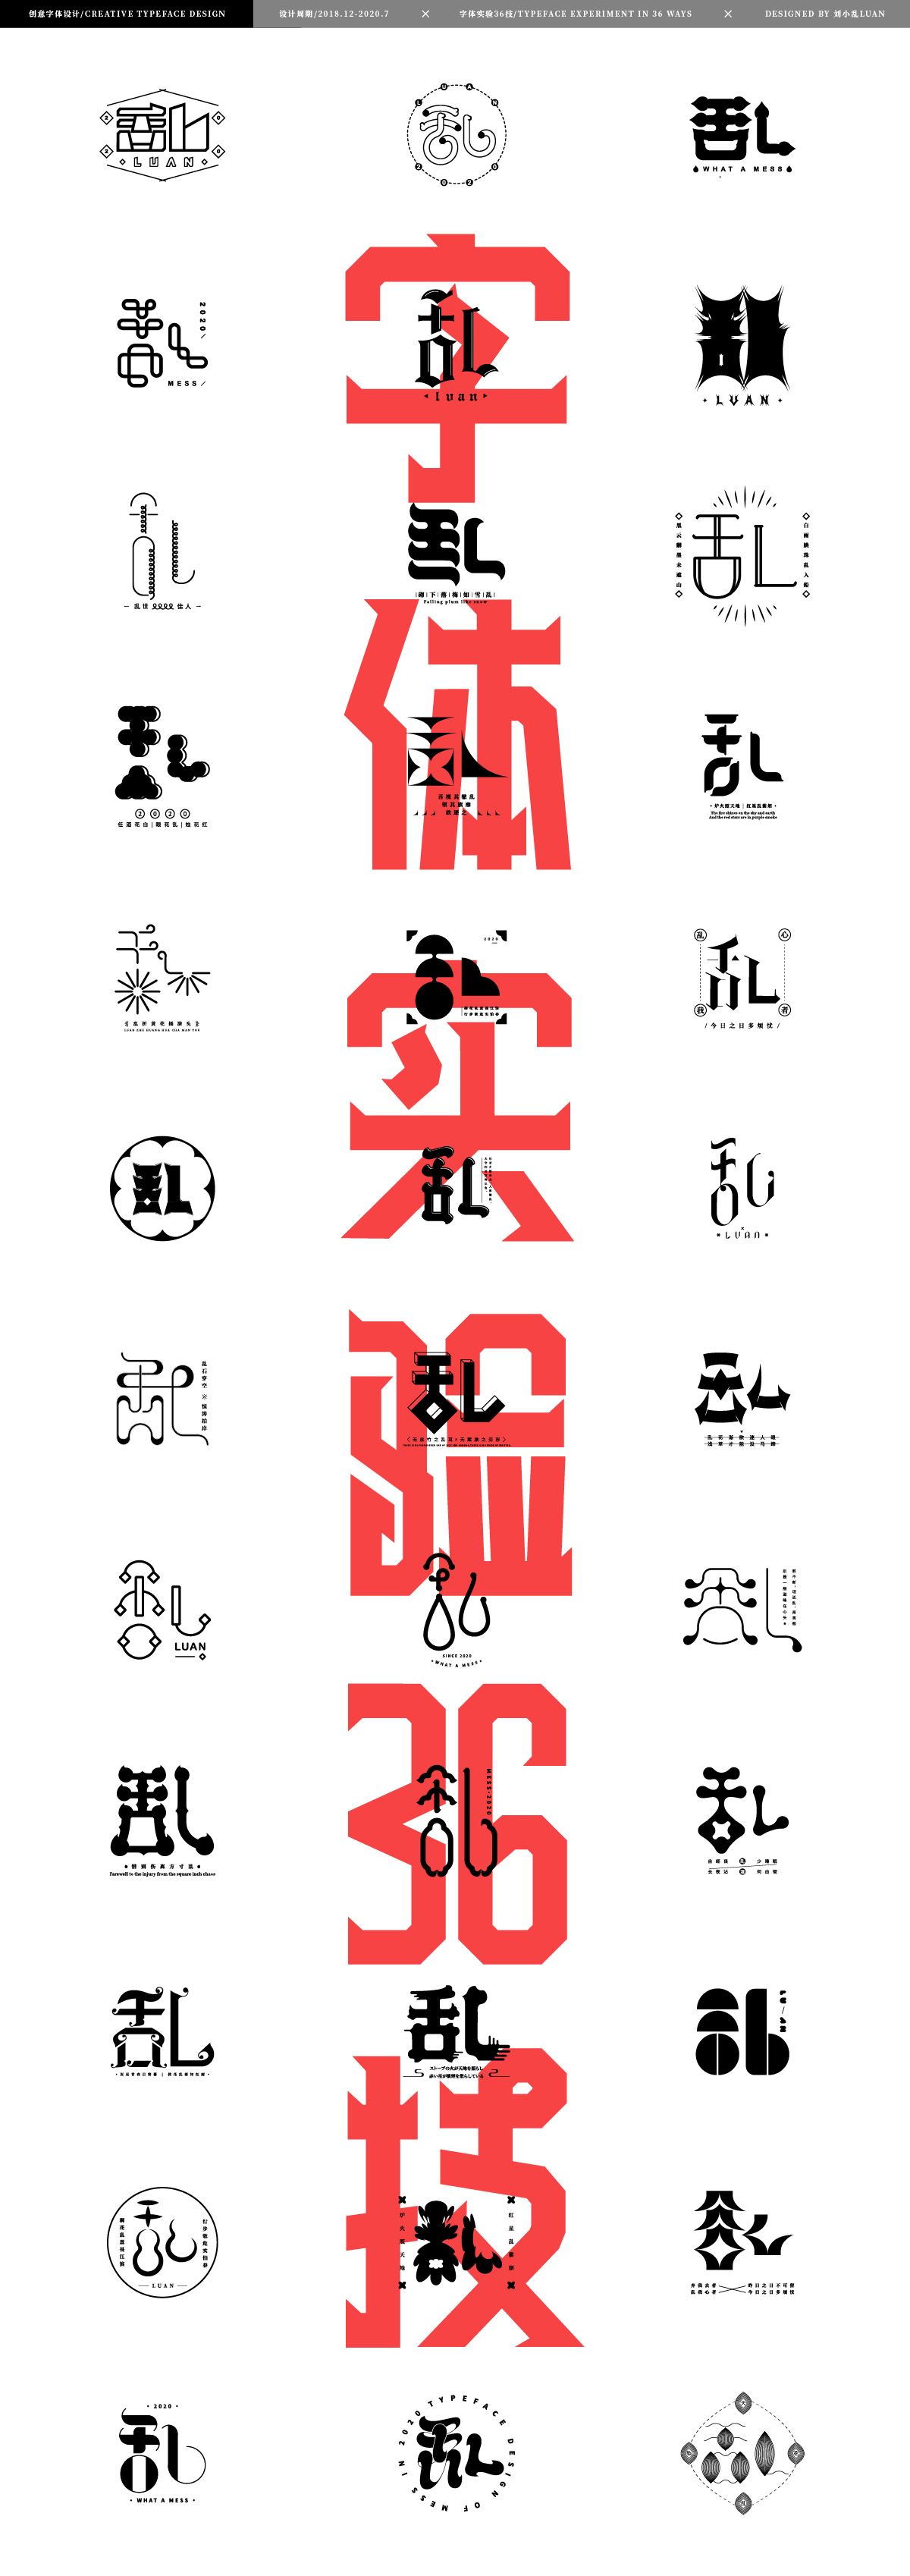 Creative font design of different styles with the word chaos